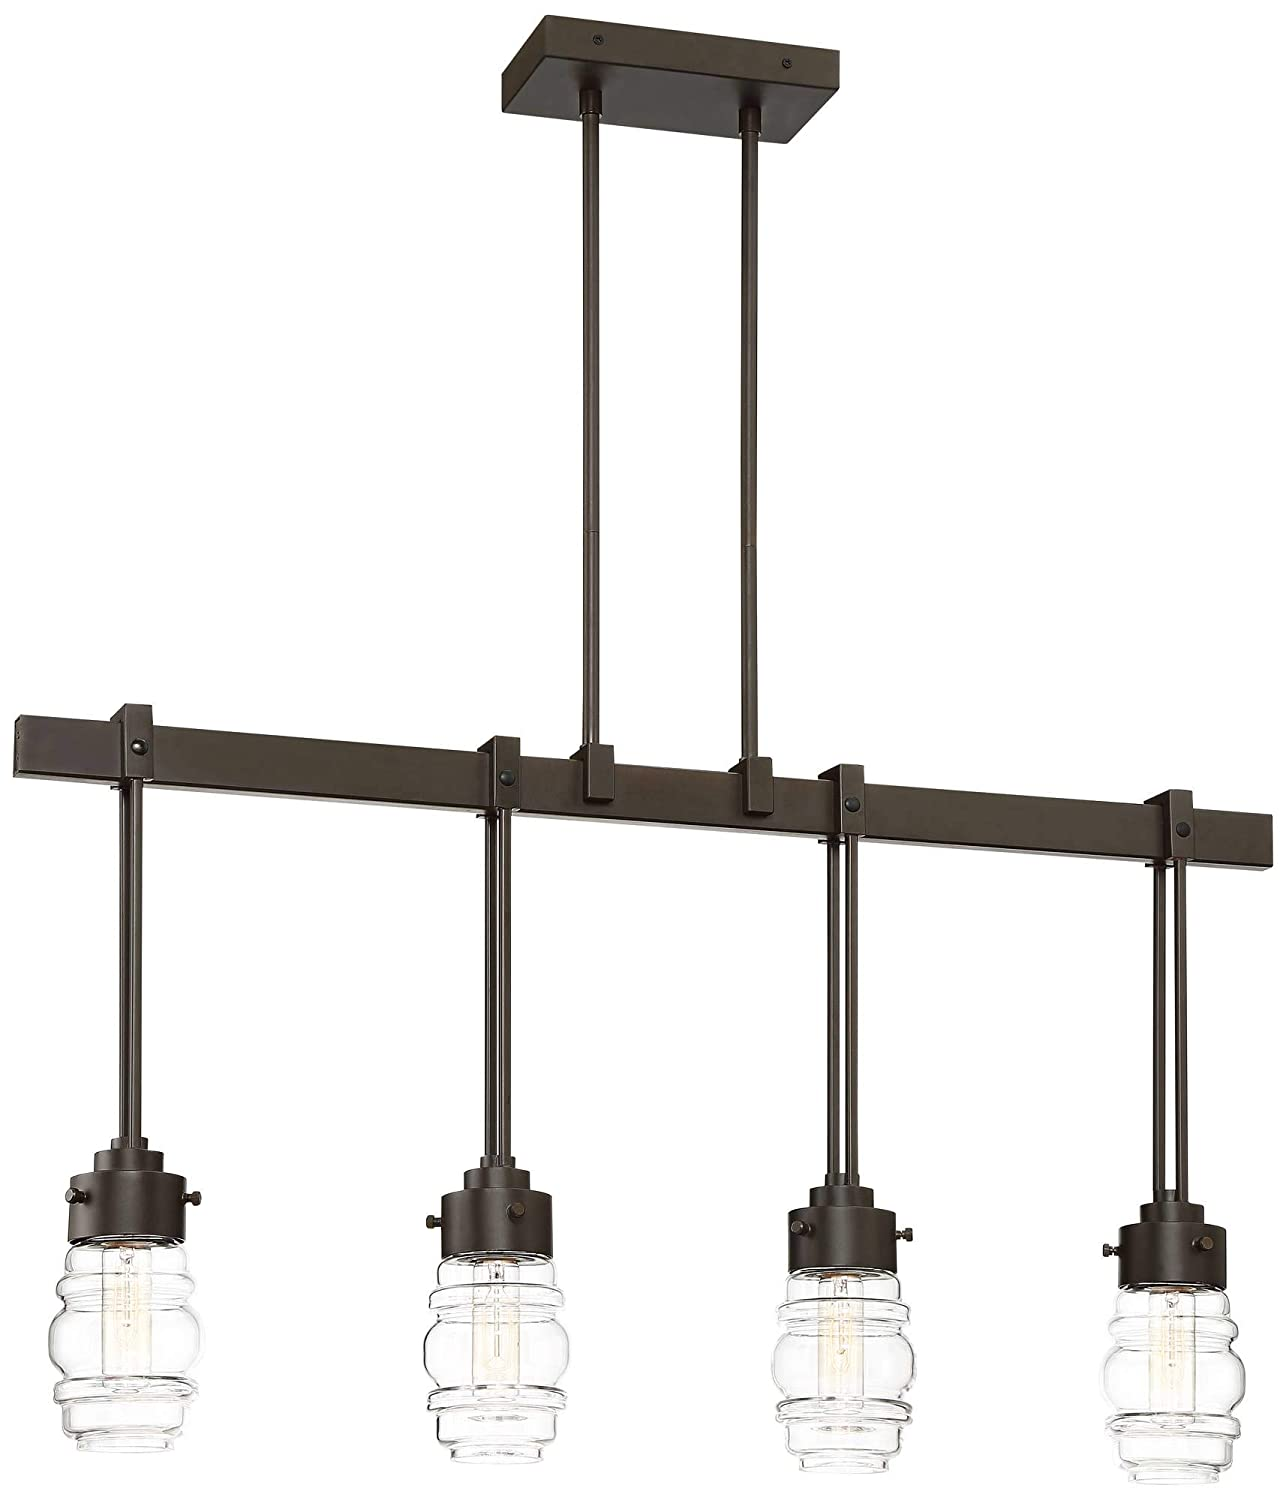 Amazon.com: Nantucket - Colgante de 4 luces de bronce ...